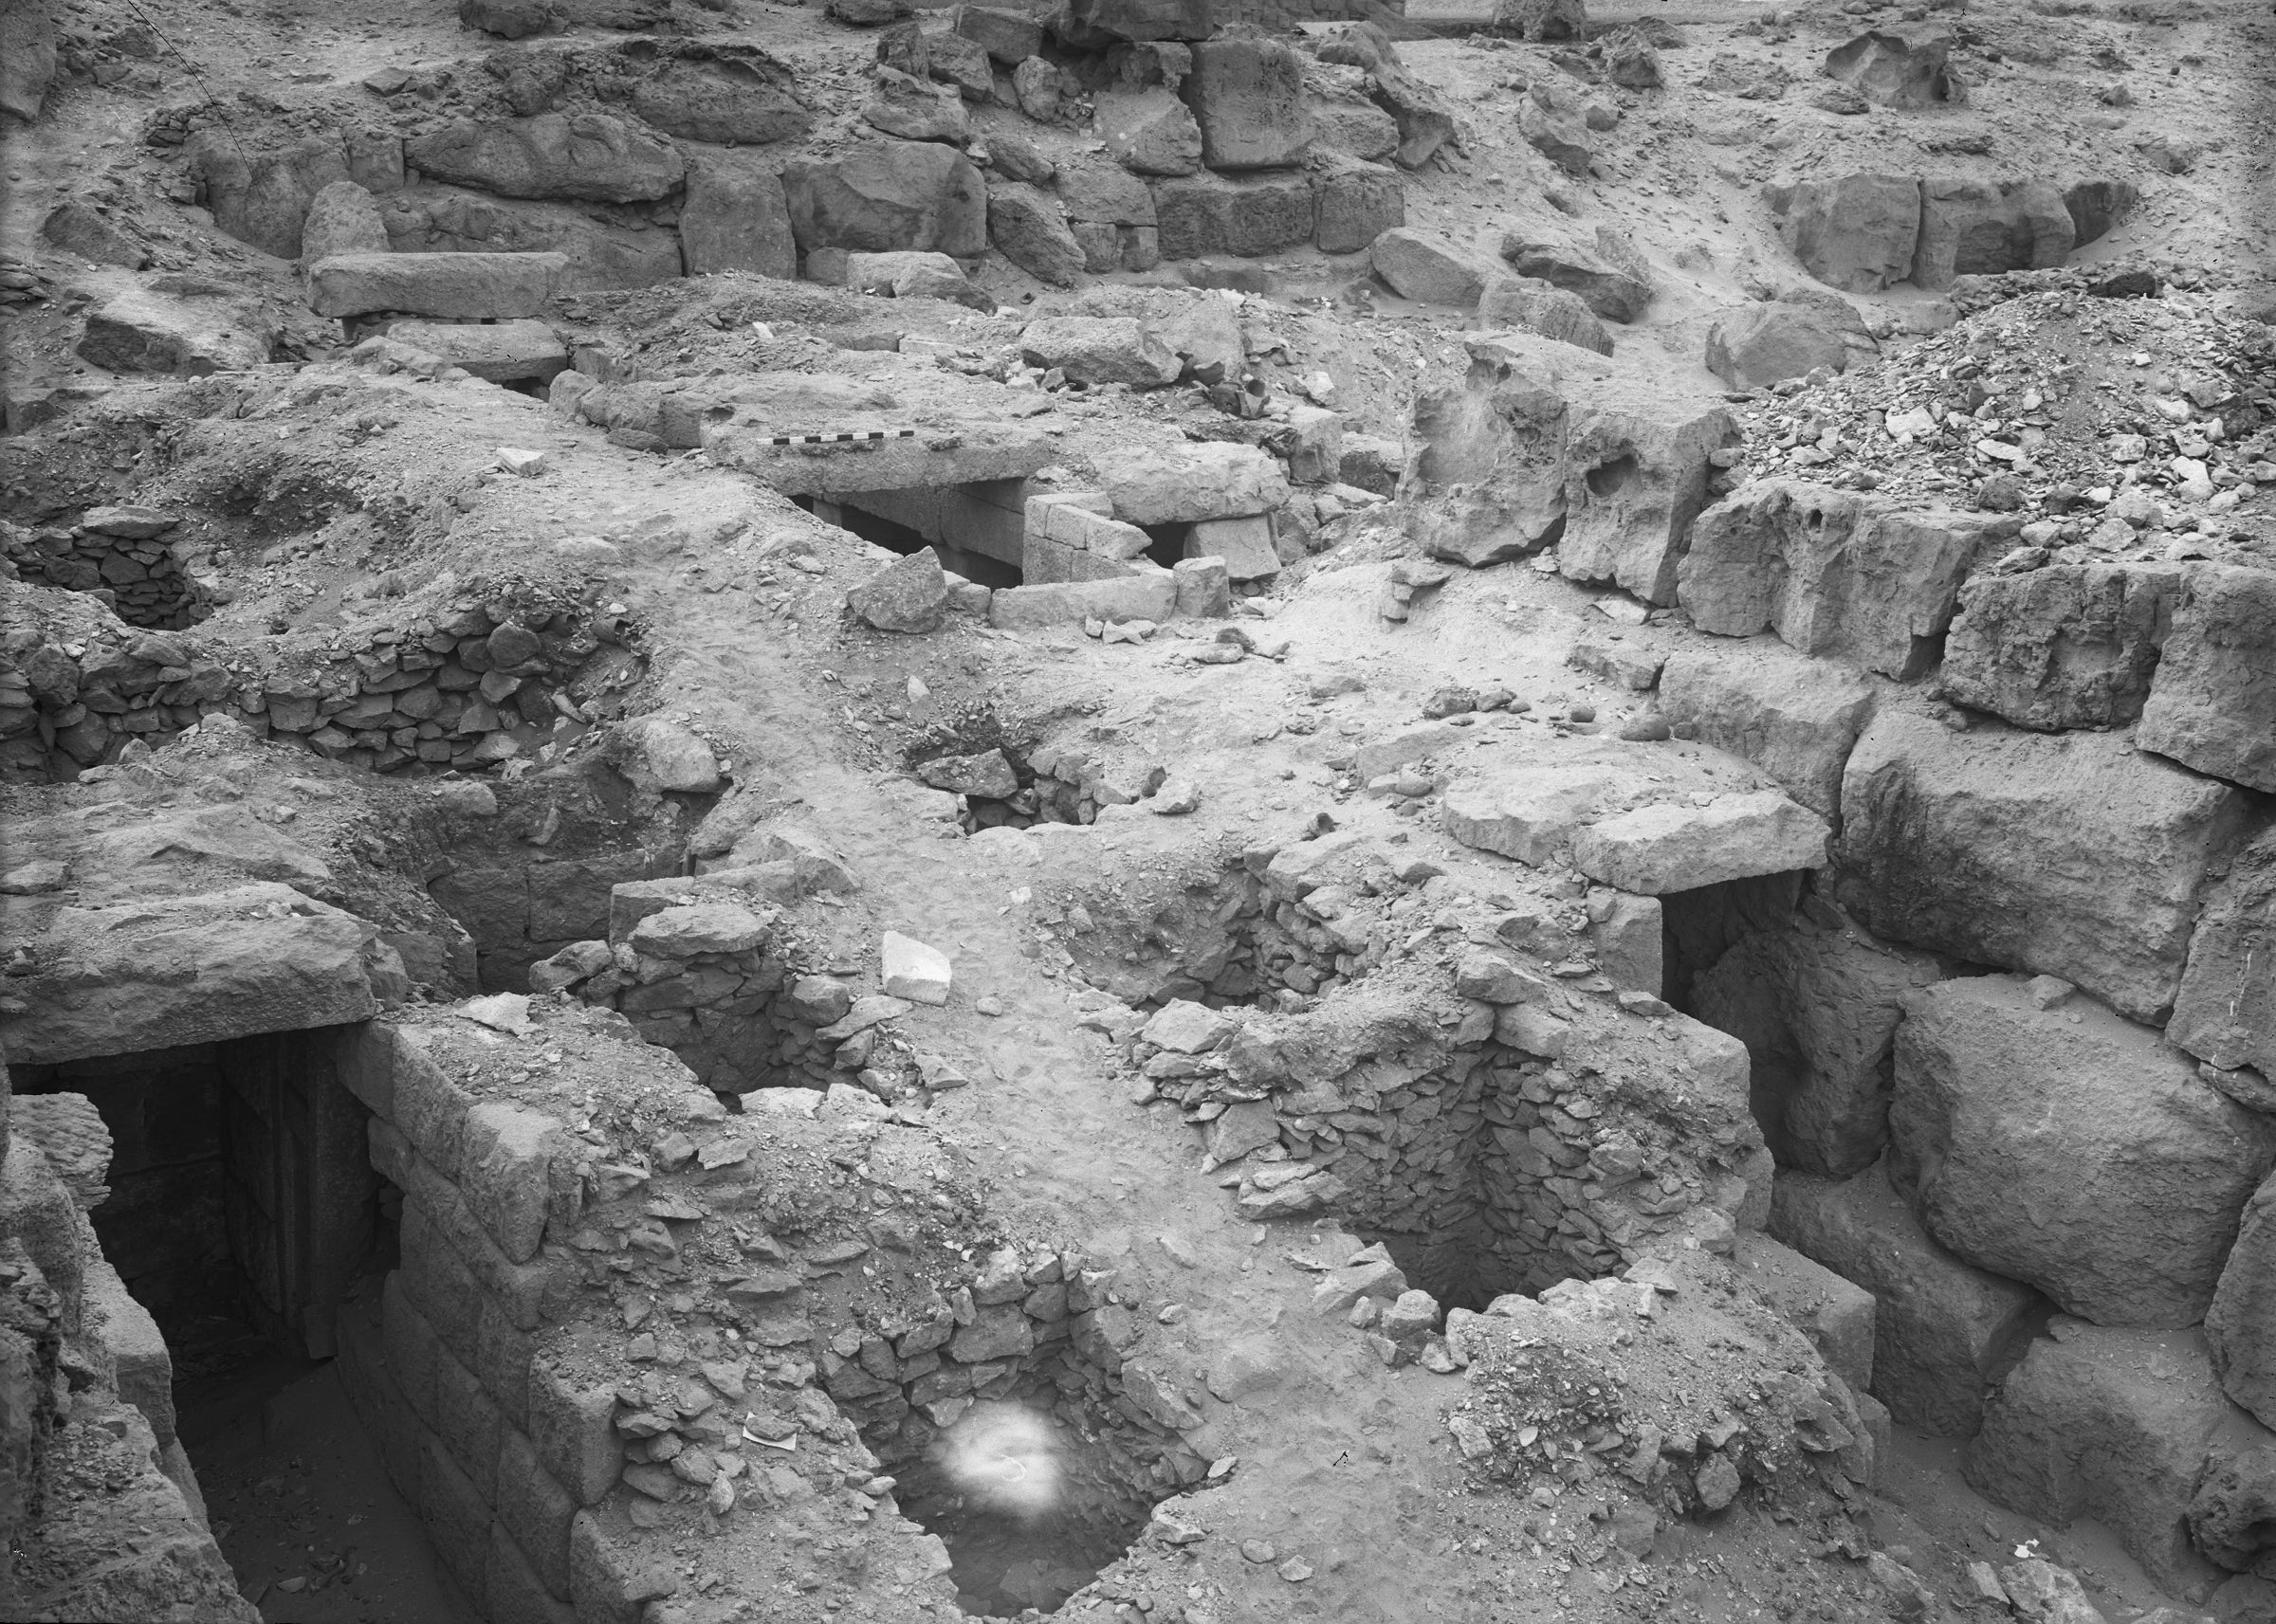 Western Cemetery: Site: Giza; View: G 4516, G 4512, G 4513, G 4510